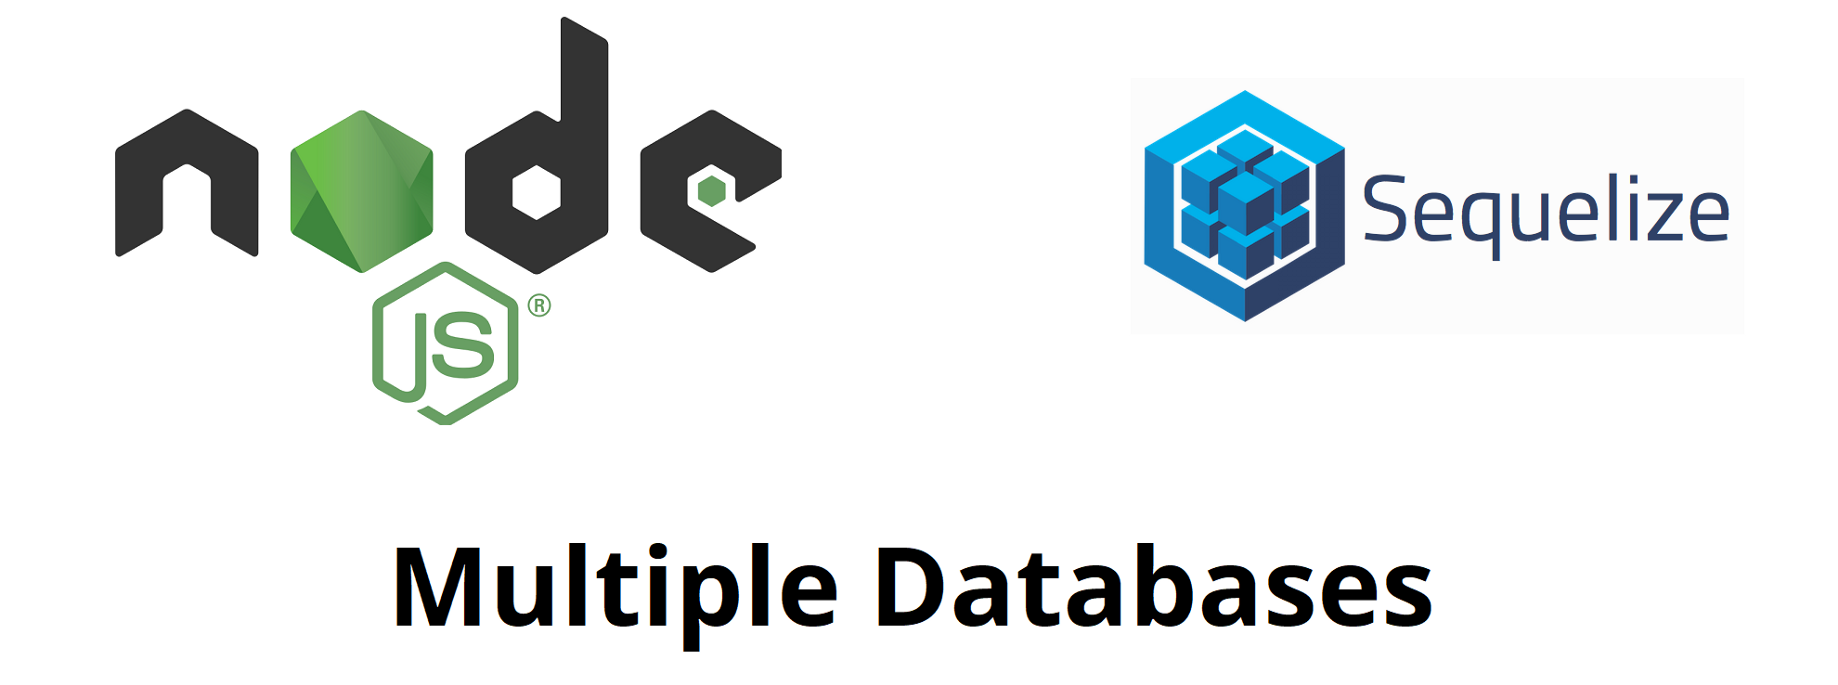 Using multiple databases with NodeJS and Sequelize - unetiq - Medium